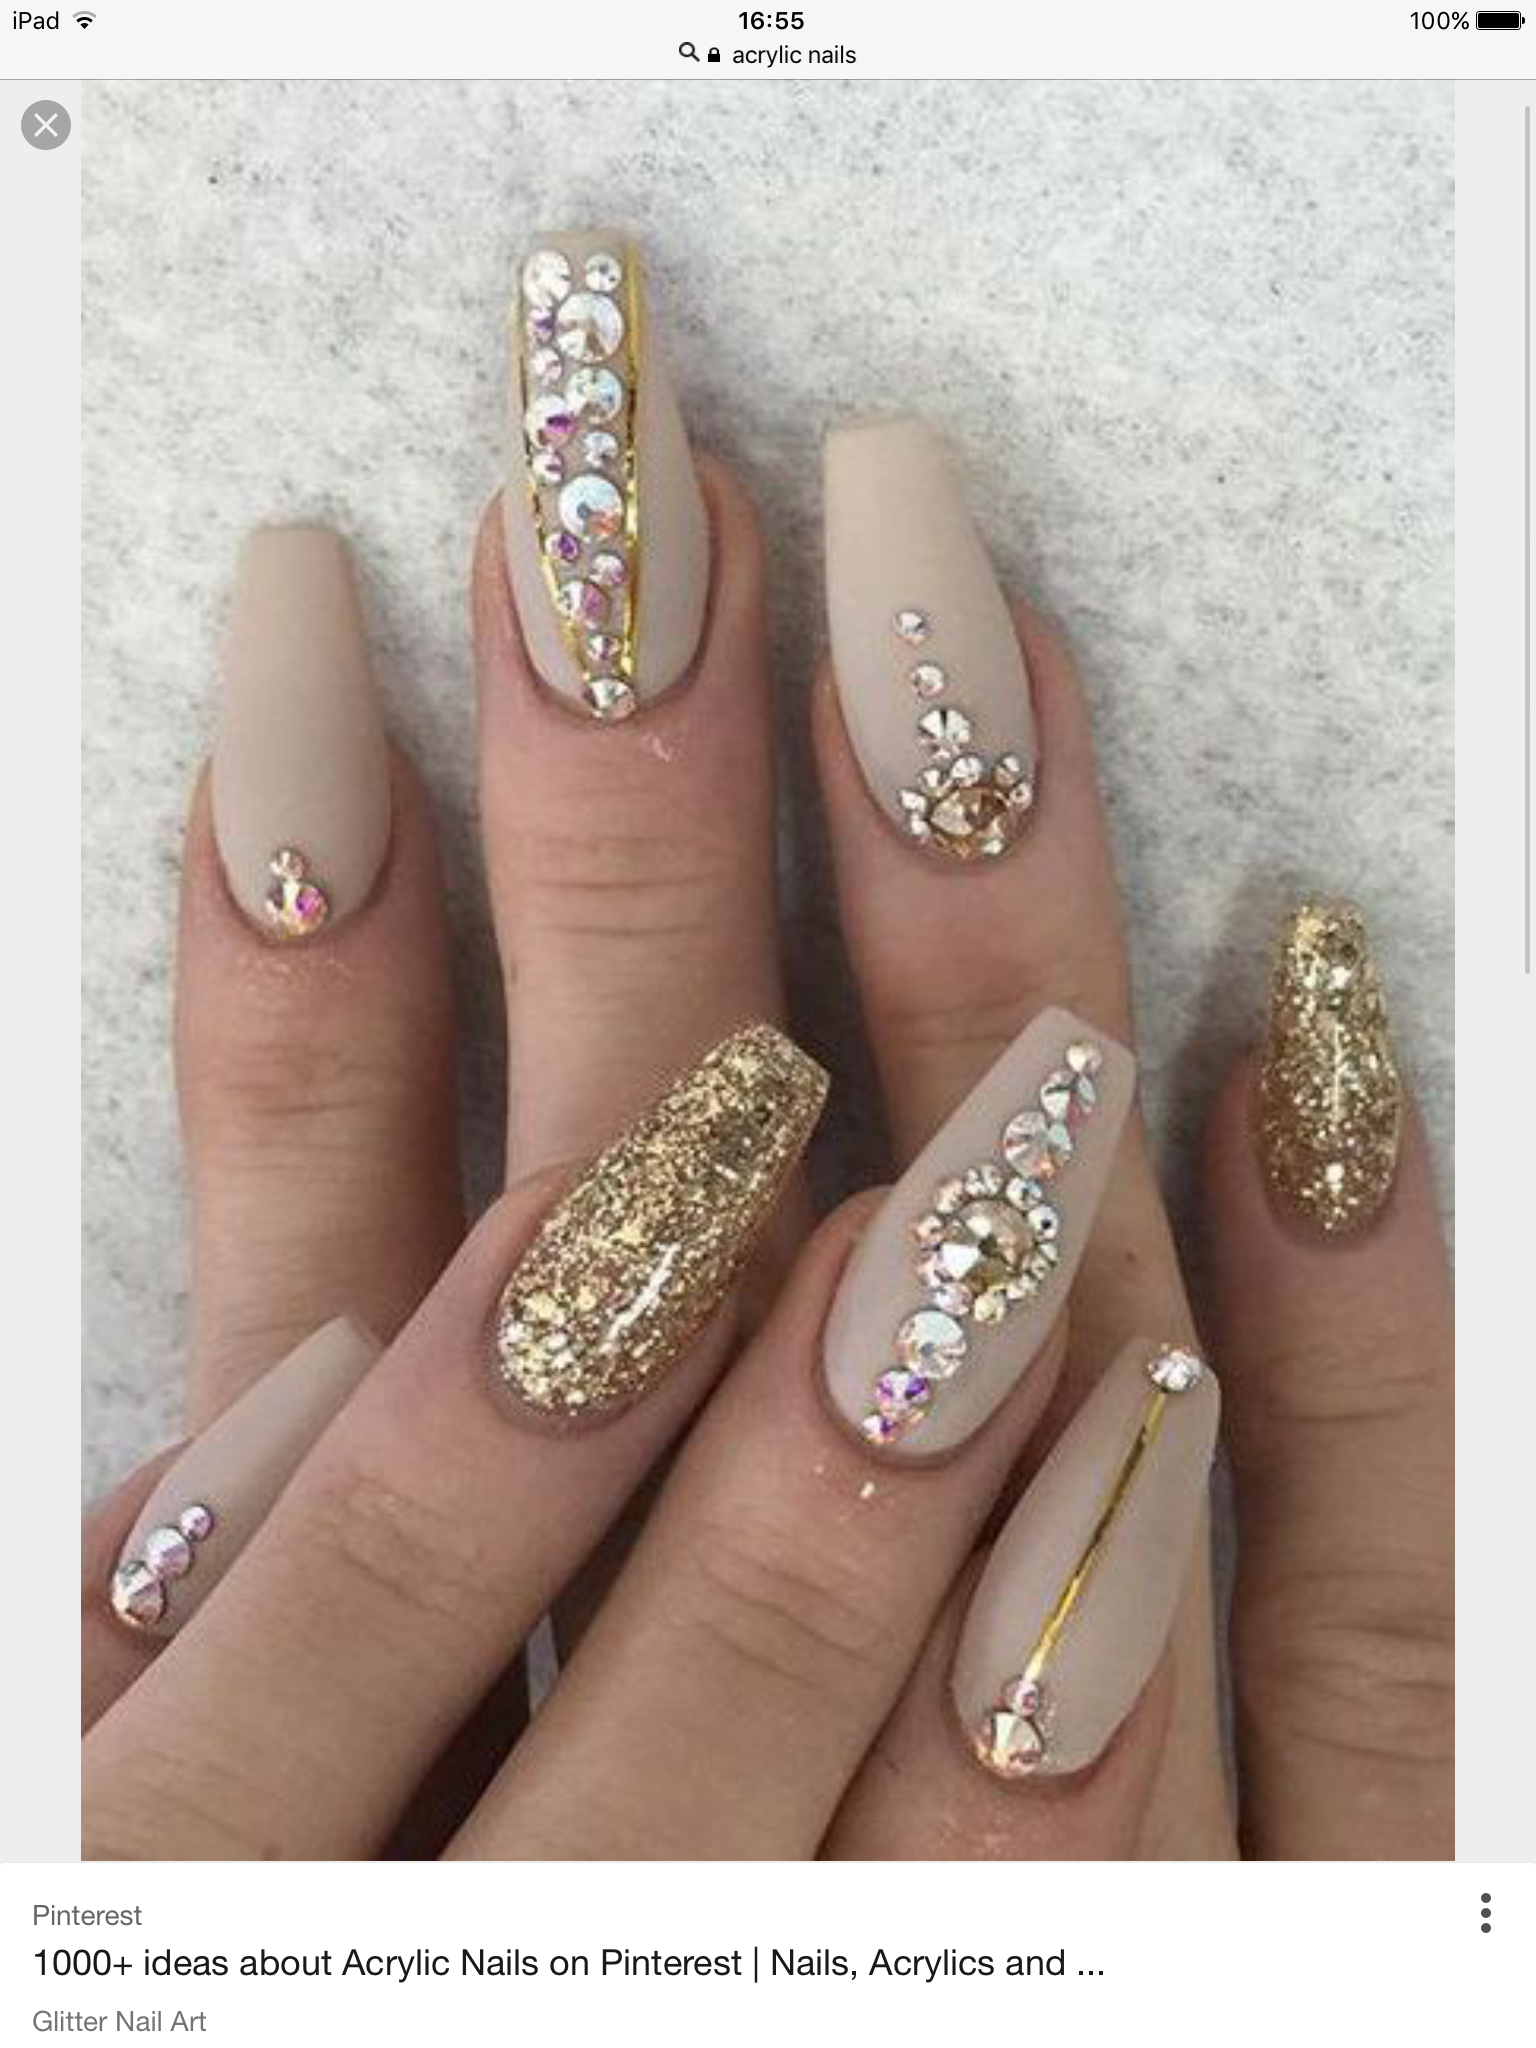 Pin by Marissa Jade on My Nail Glam | Pinterest | Classy nails ...